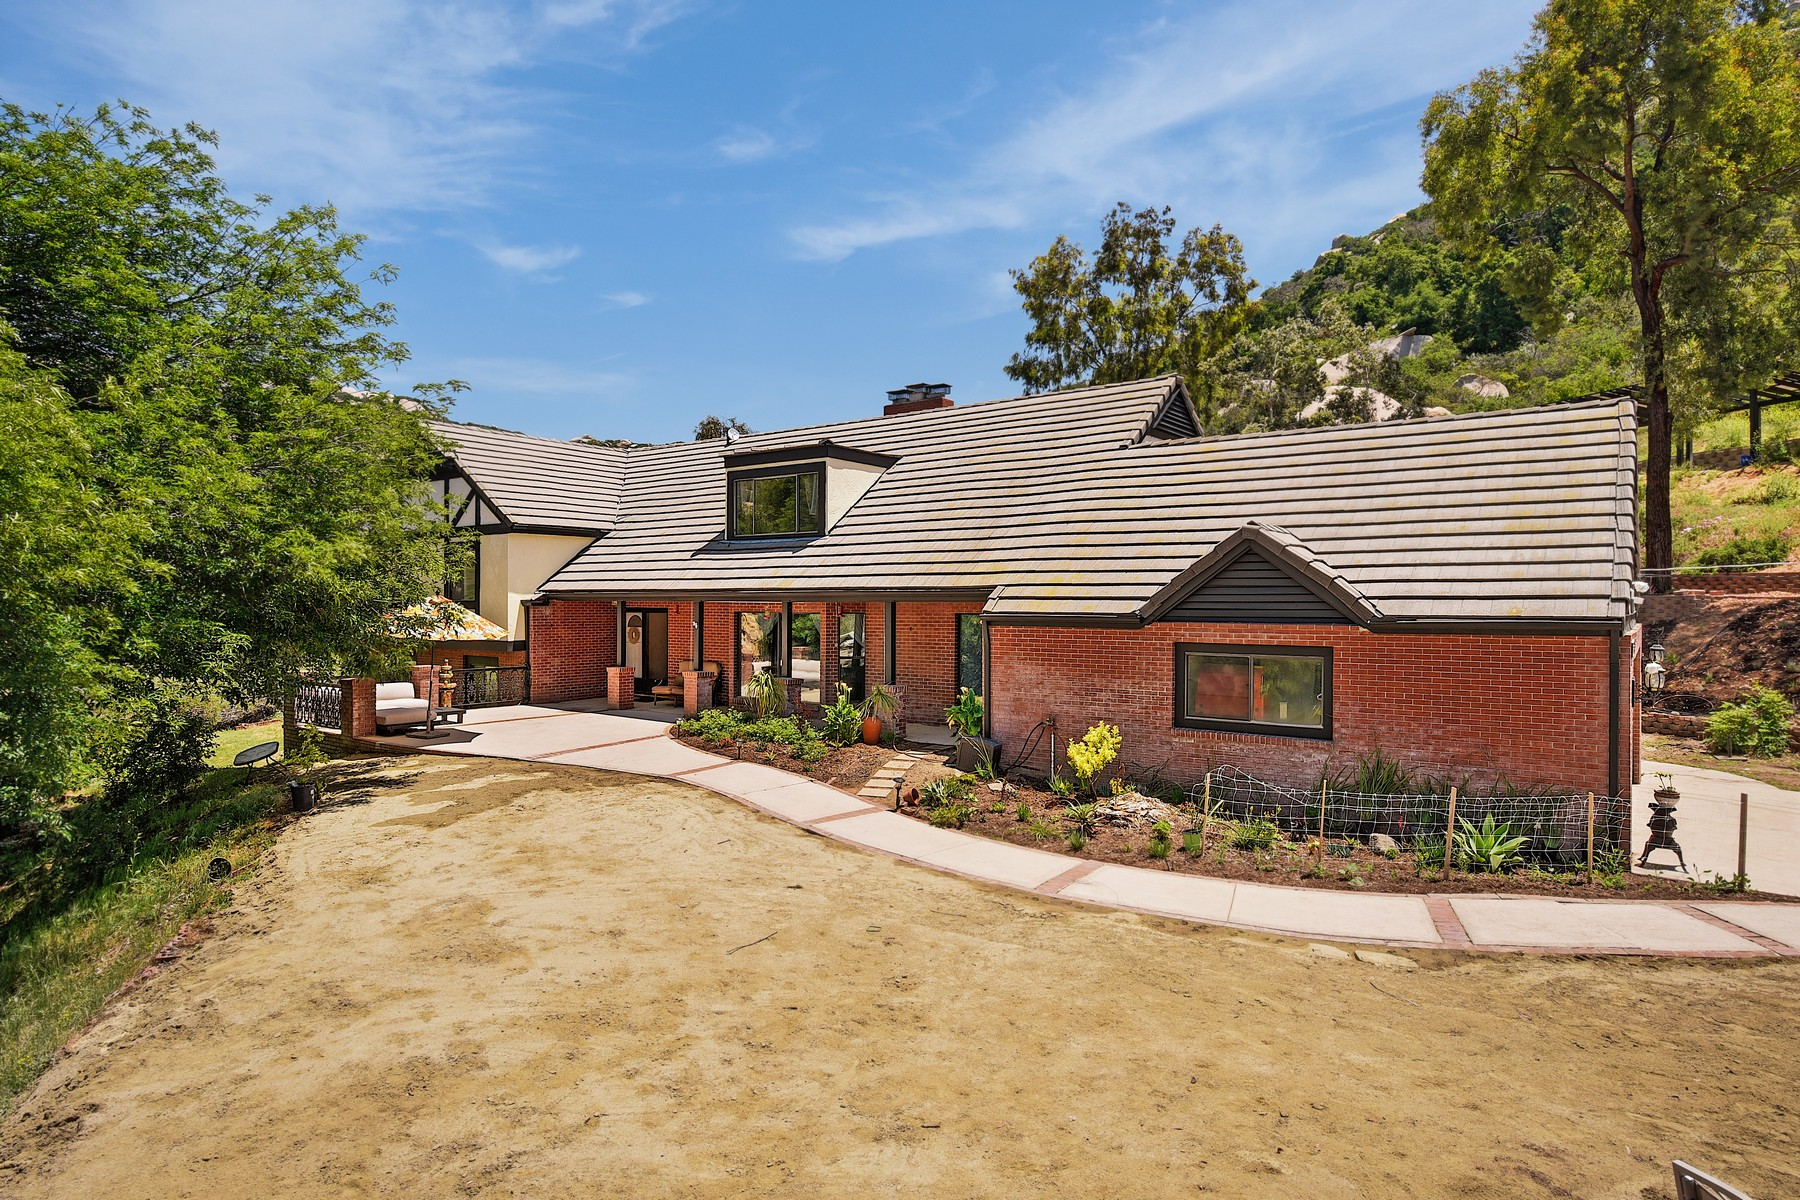 Single Family Homes for Sale at 16311 Coyote Creek Trail Poway, California 92064 United States